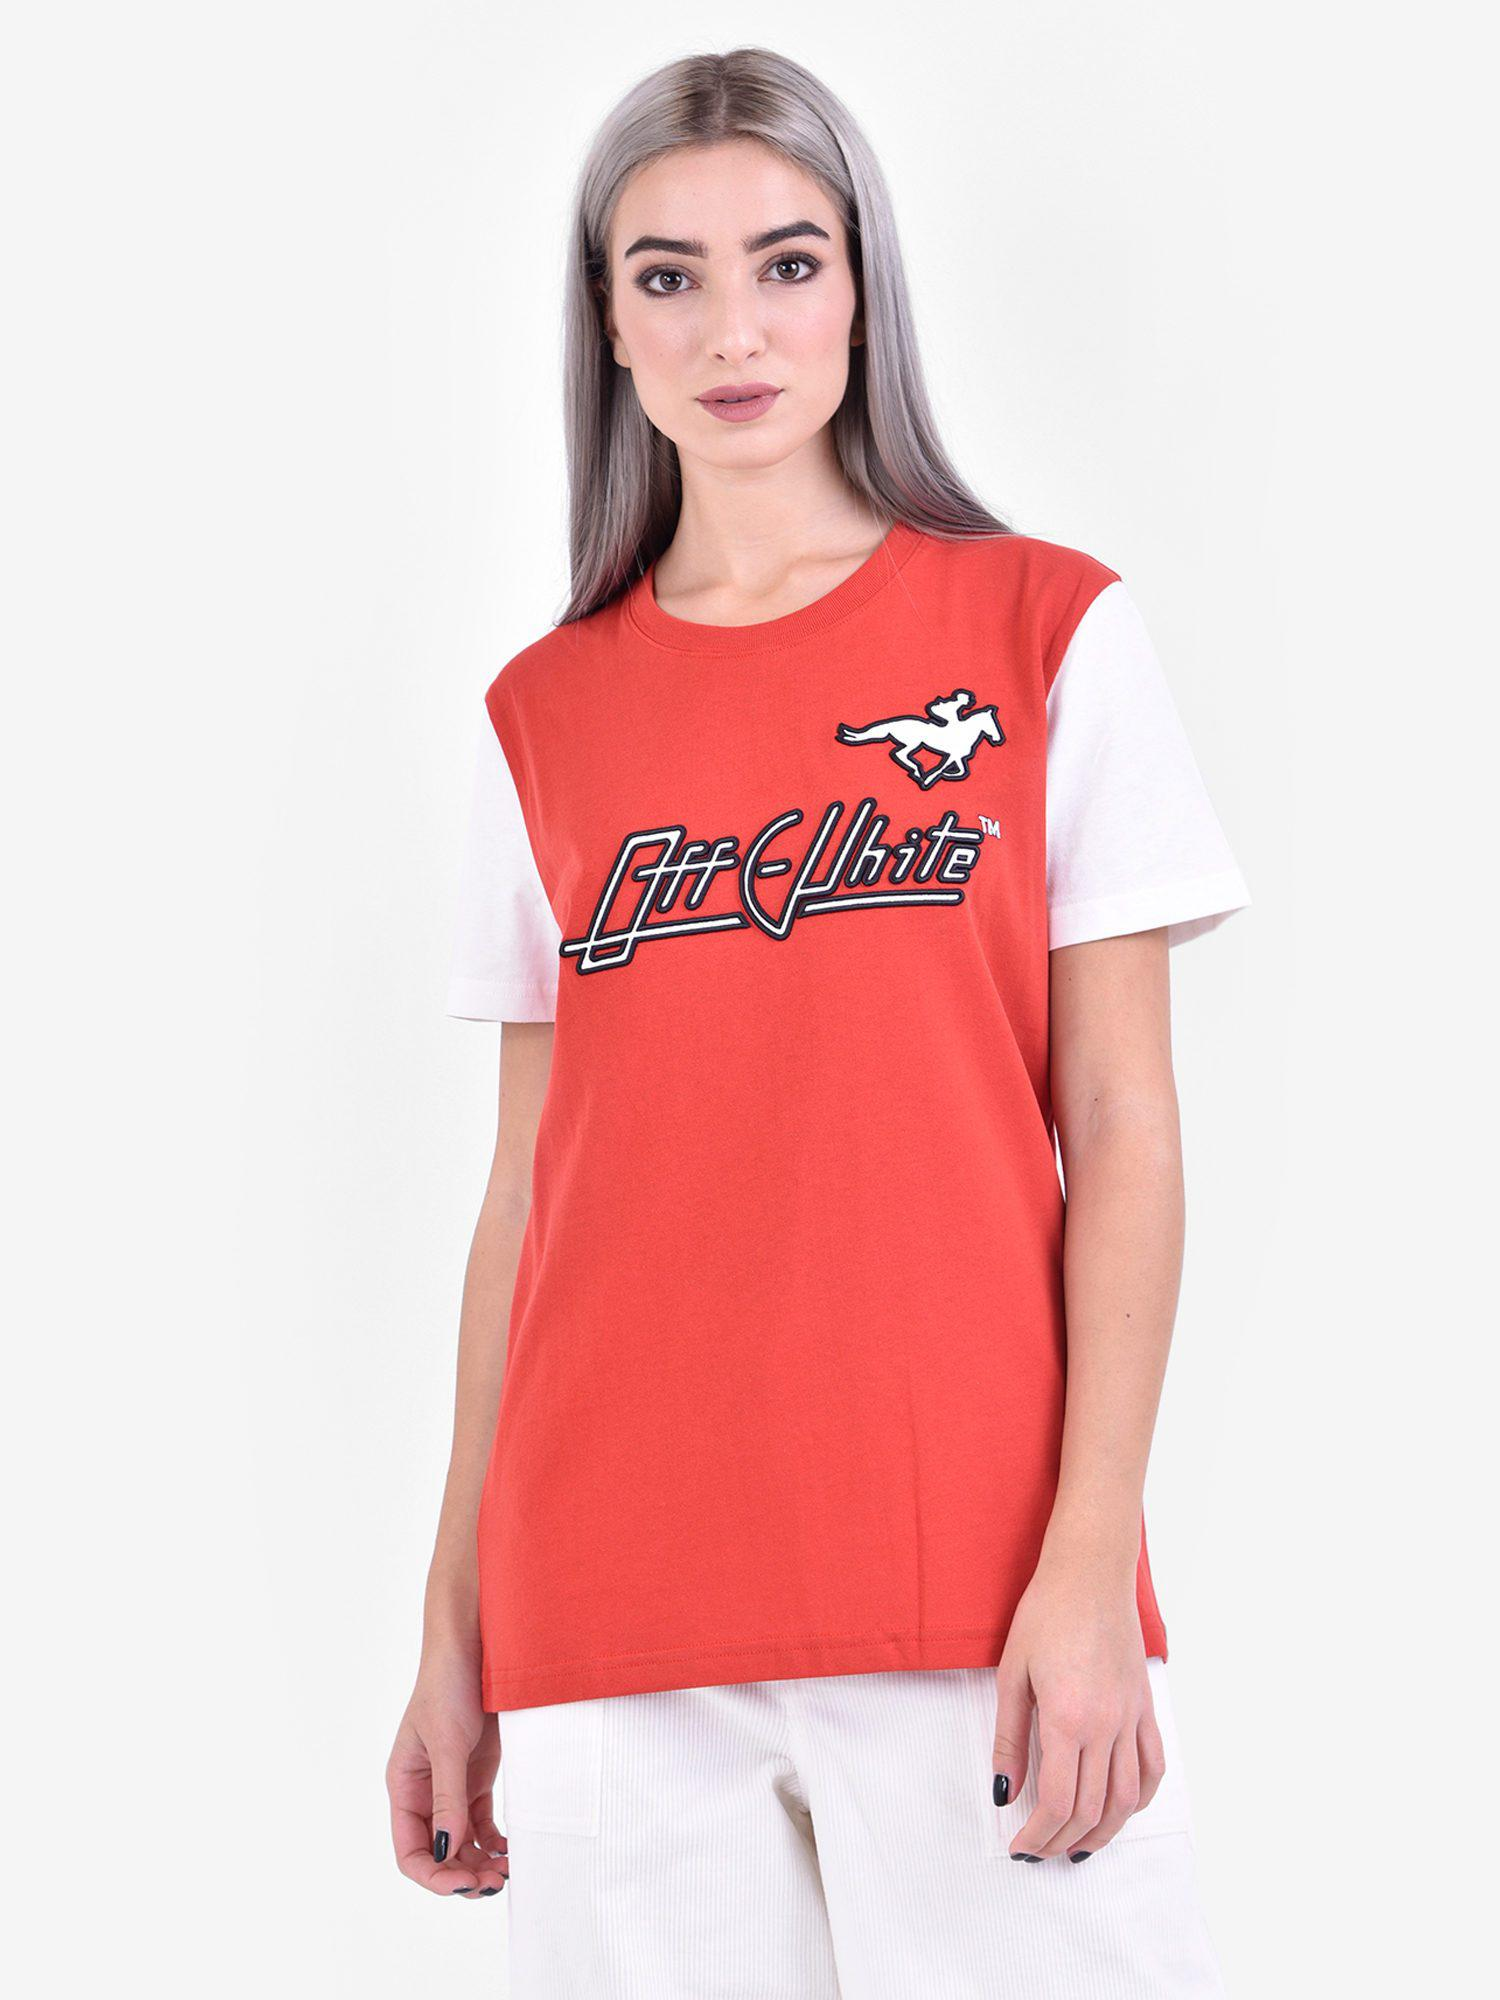 a4b1d91048c4 Off-White C O Virgil Abloh Printed Cotton T-shirt in Red - Lyst